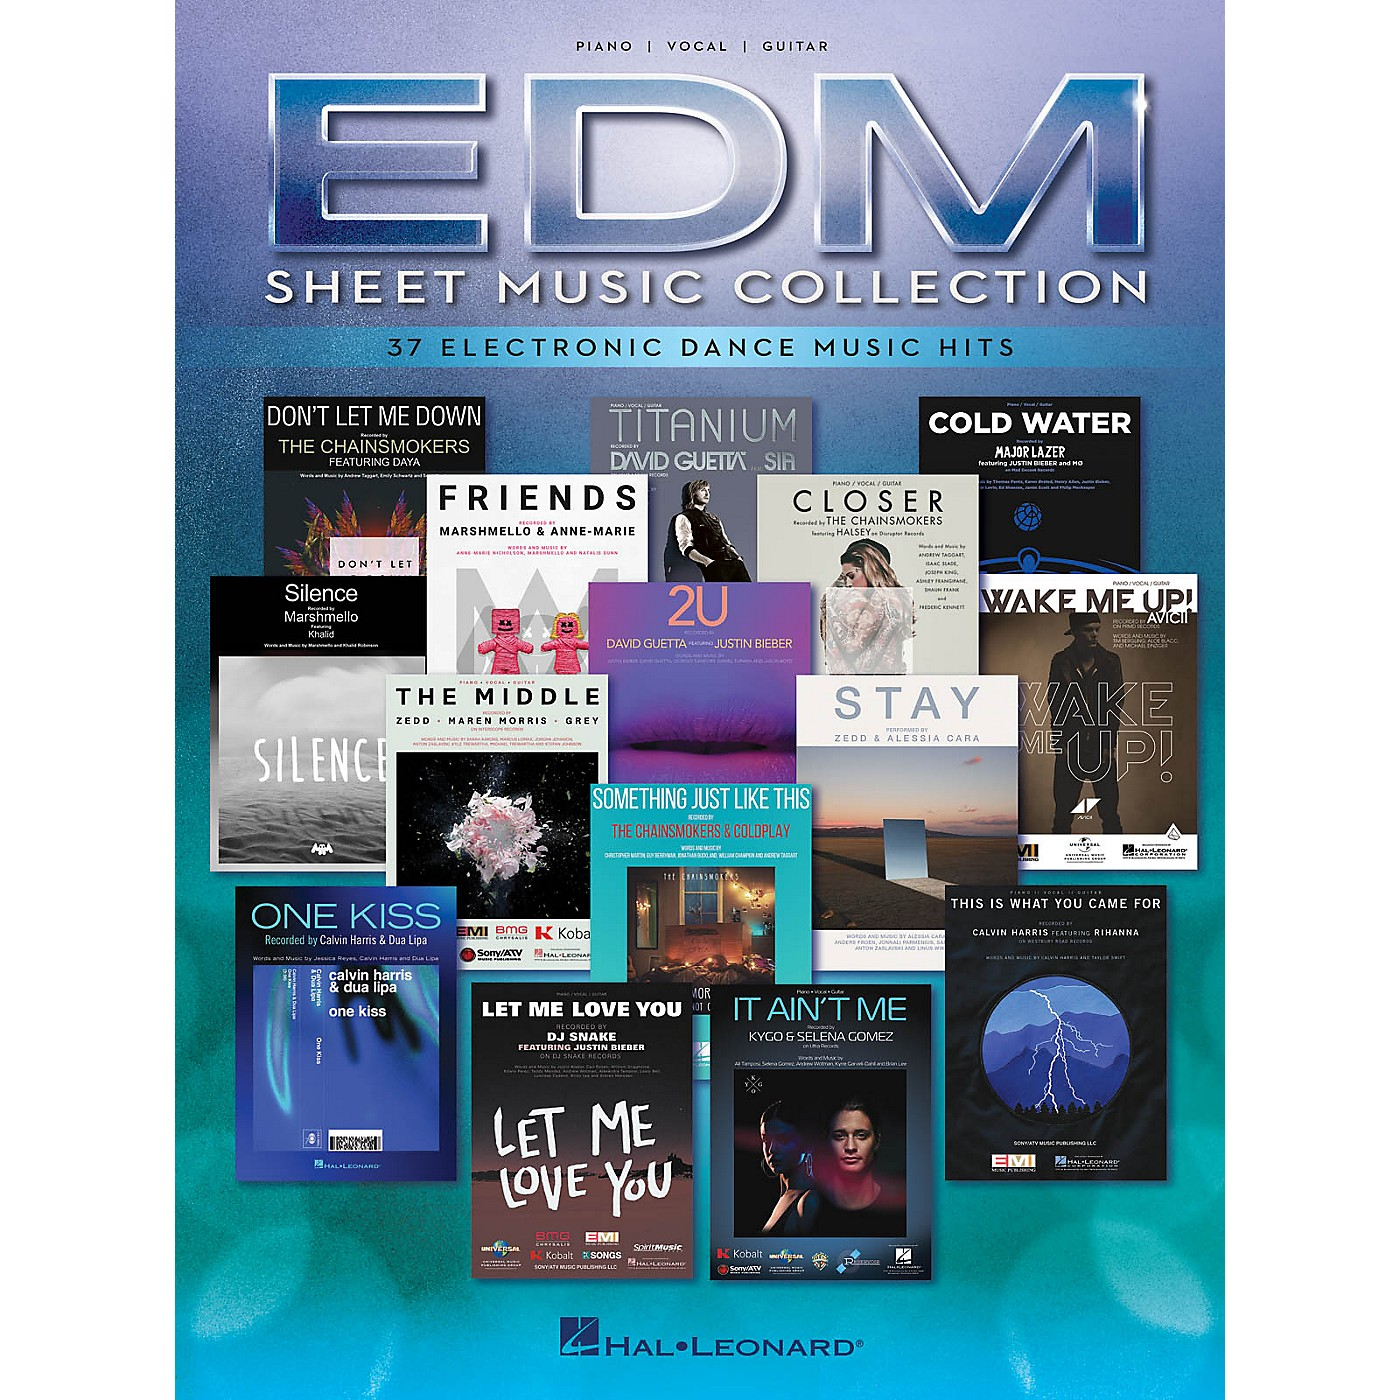 Hal Leonard EDM Sheet Music Collection (37 Electronic Dance Music Hits) Piano/Vocal/Guitar Songbook thumbnail